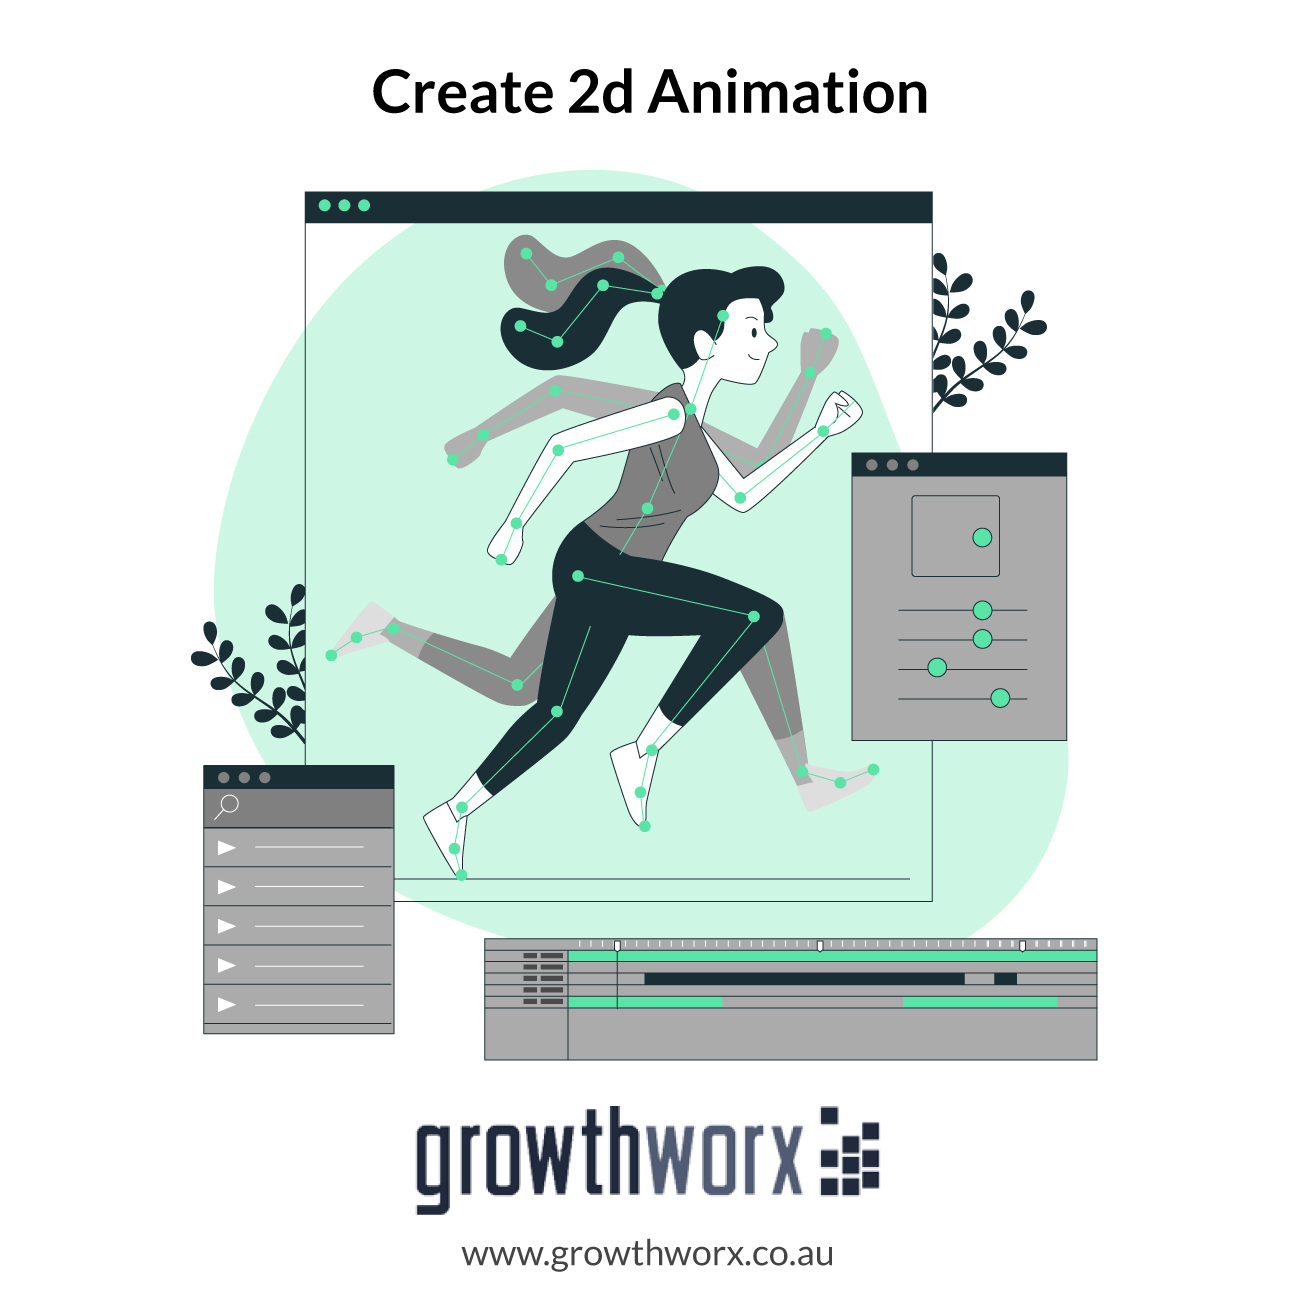 We will create 2d animation and nursery rhymes for kids 1